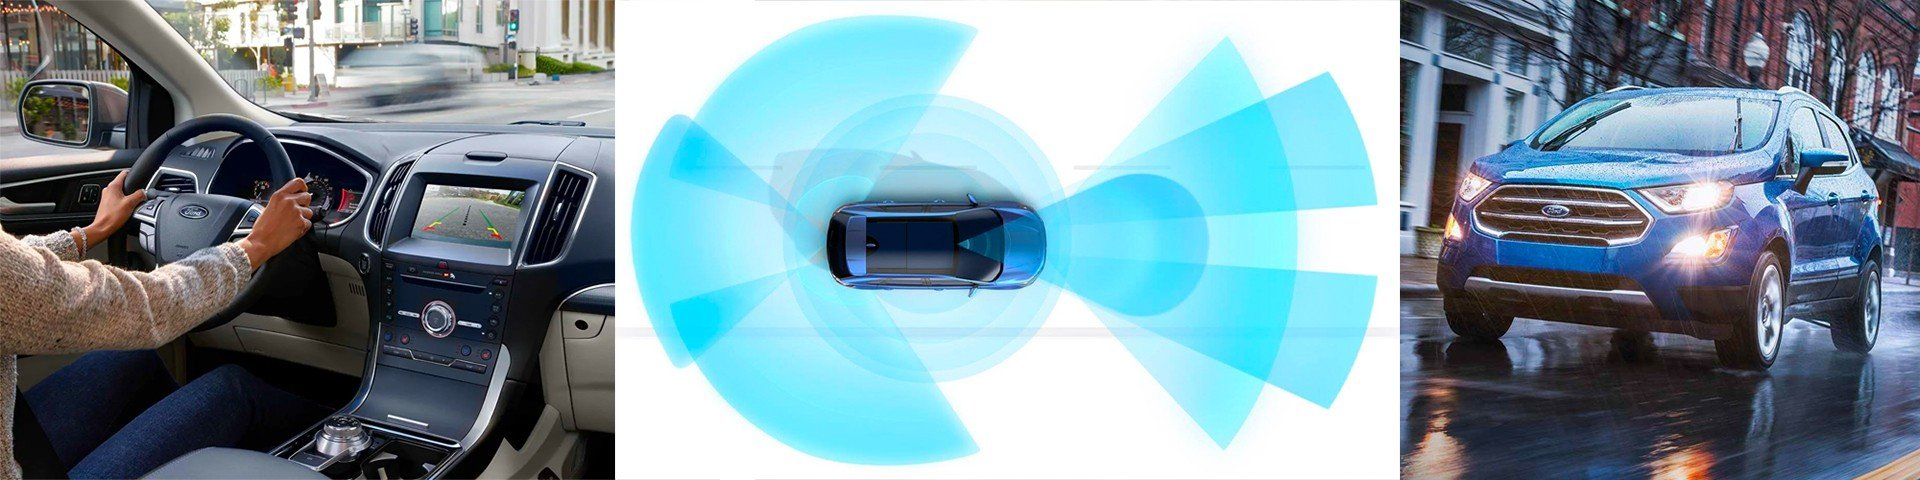 Ford driver assist package